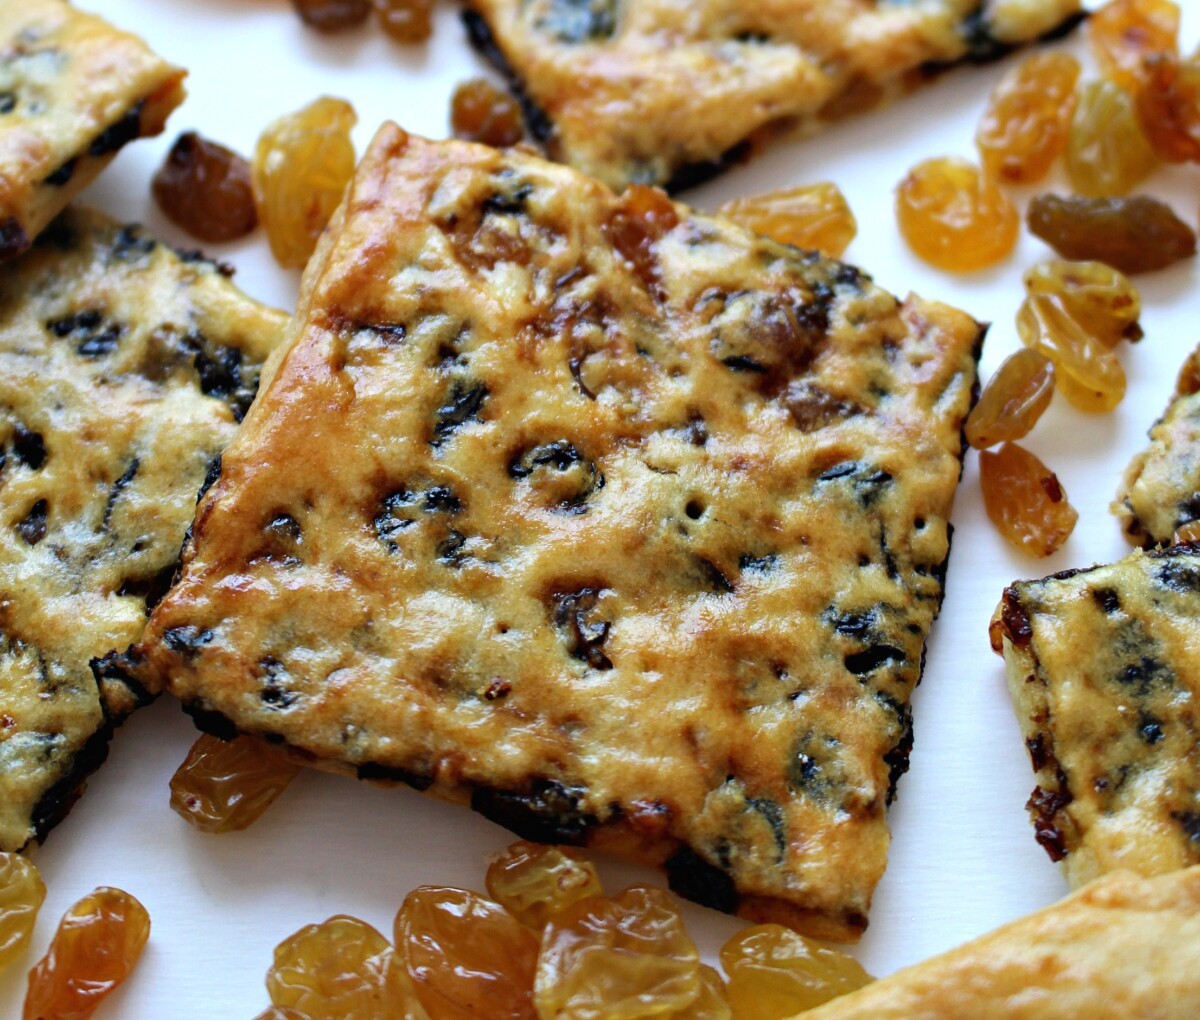 Closeup of a thin raisin cookie square showing the shiny golden crust.